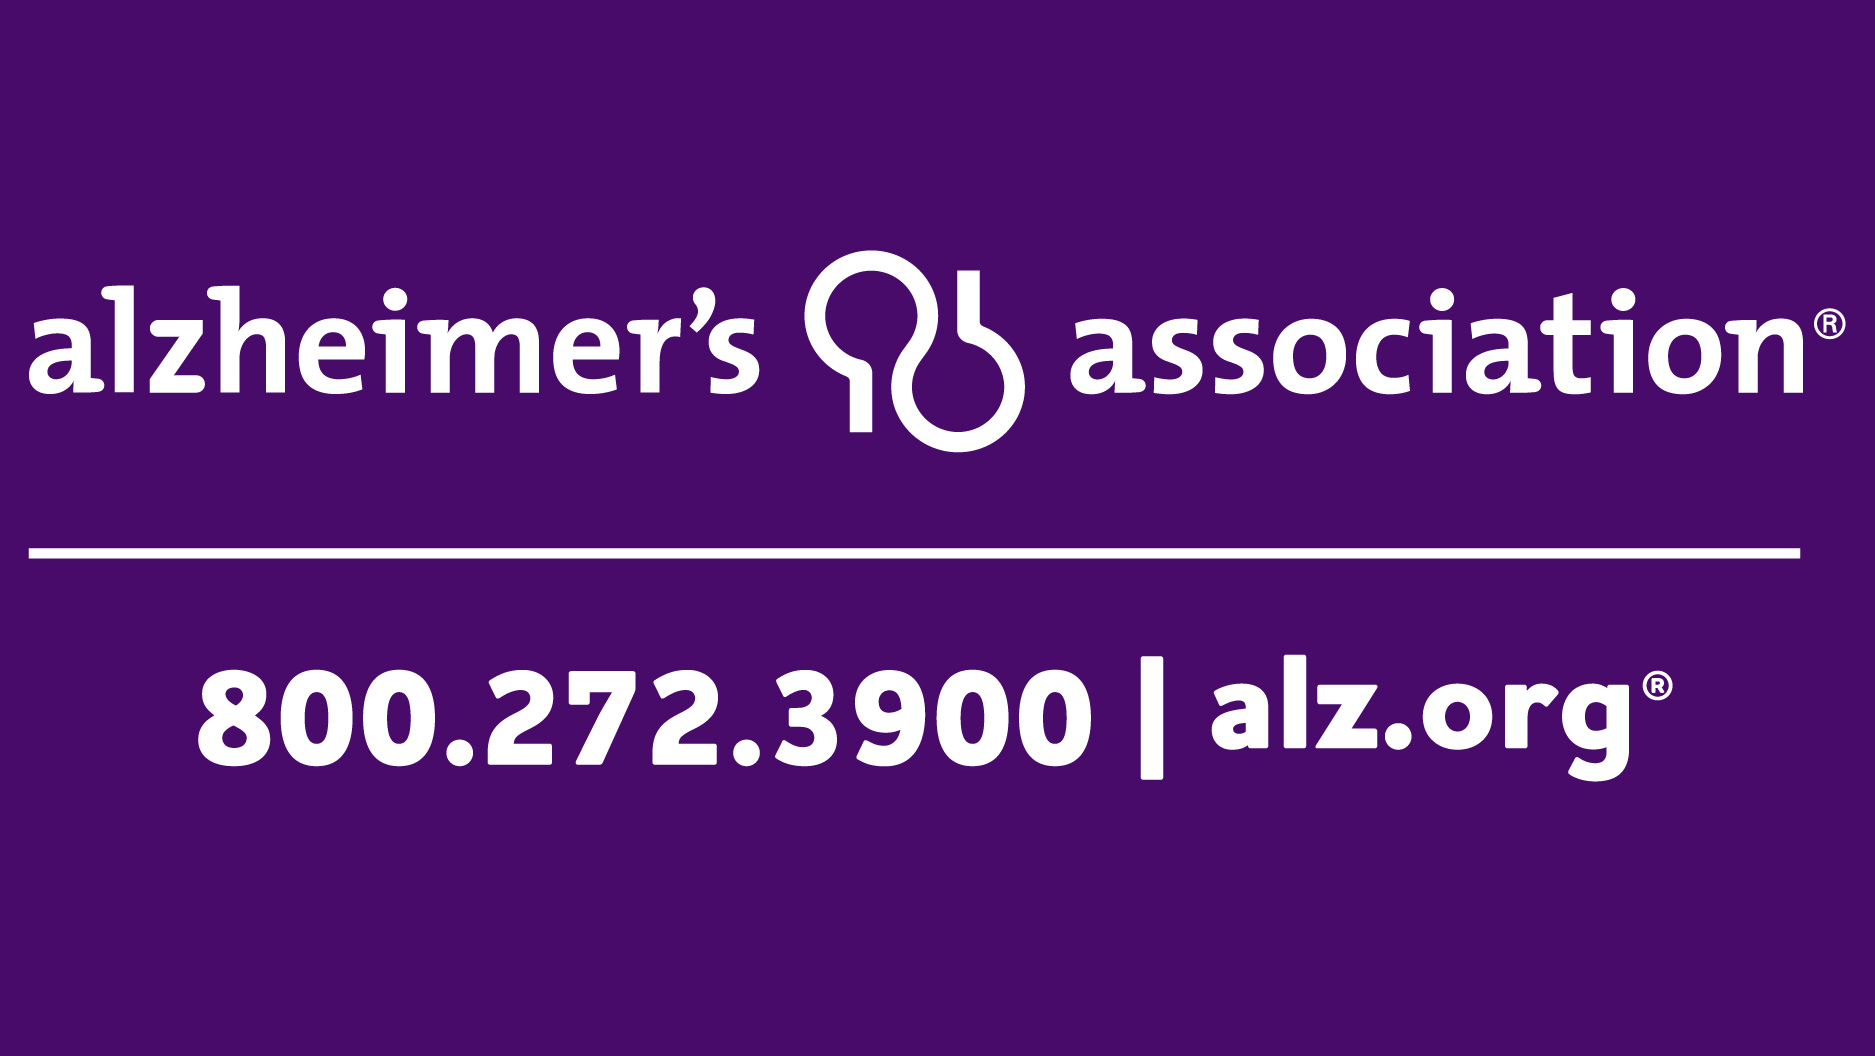 Alzheimer's affects so many of us. Find out how YOU can help!